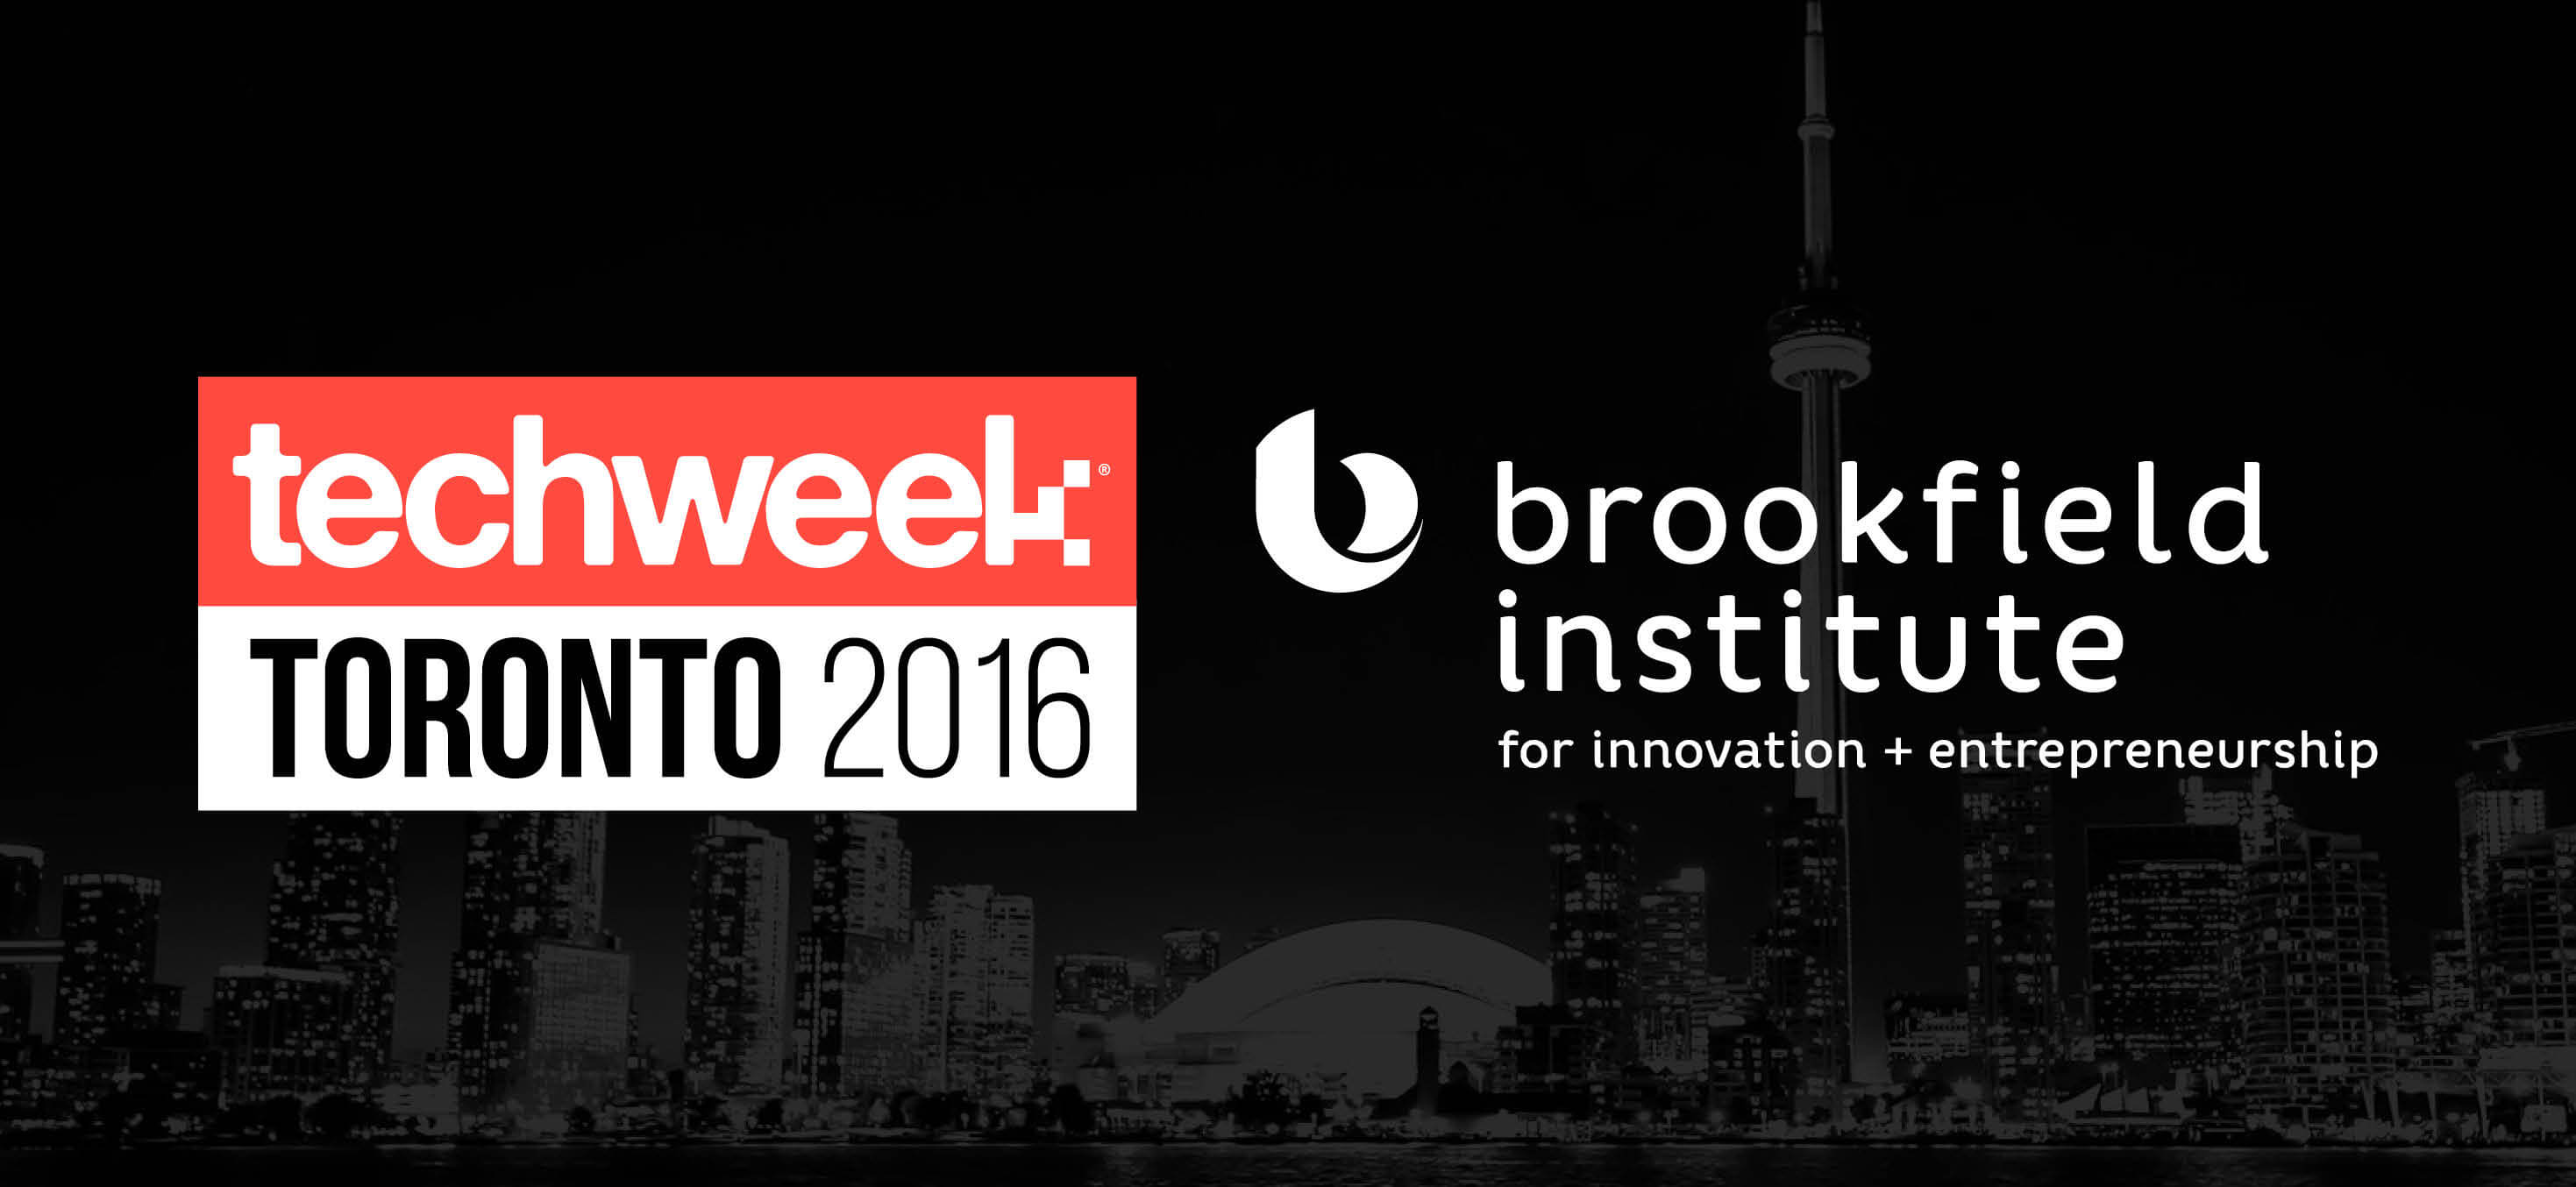 Techweek Toronto - The Brookfield Institute